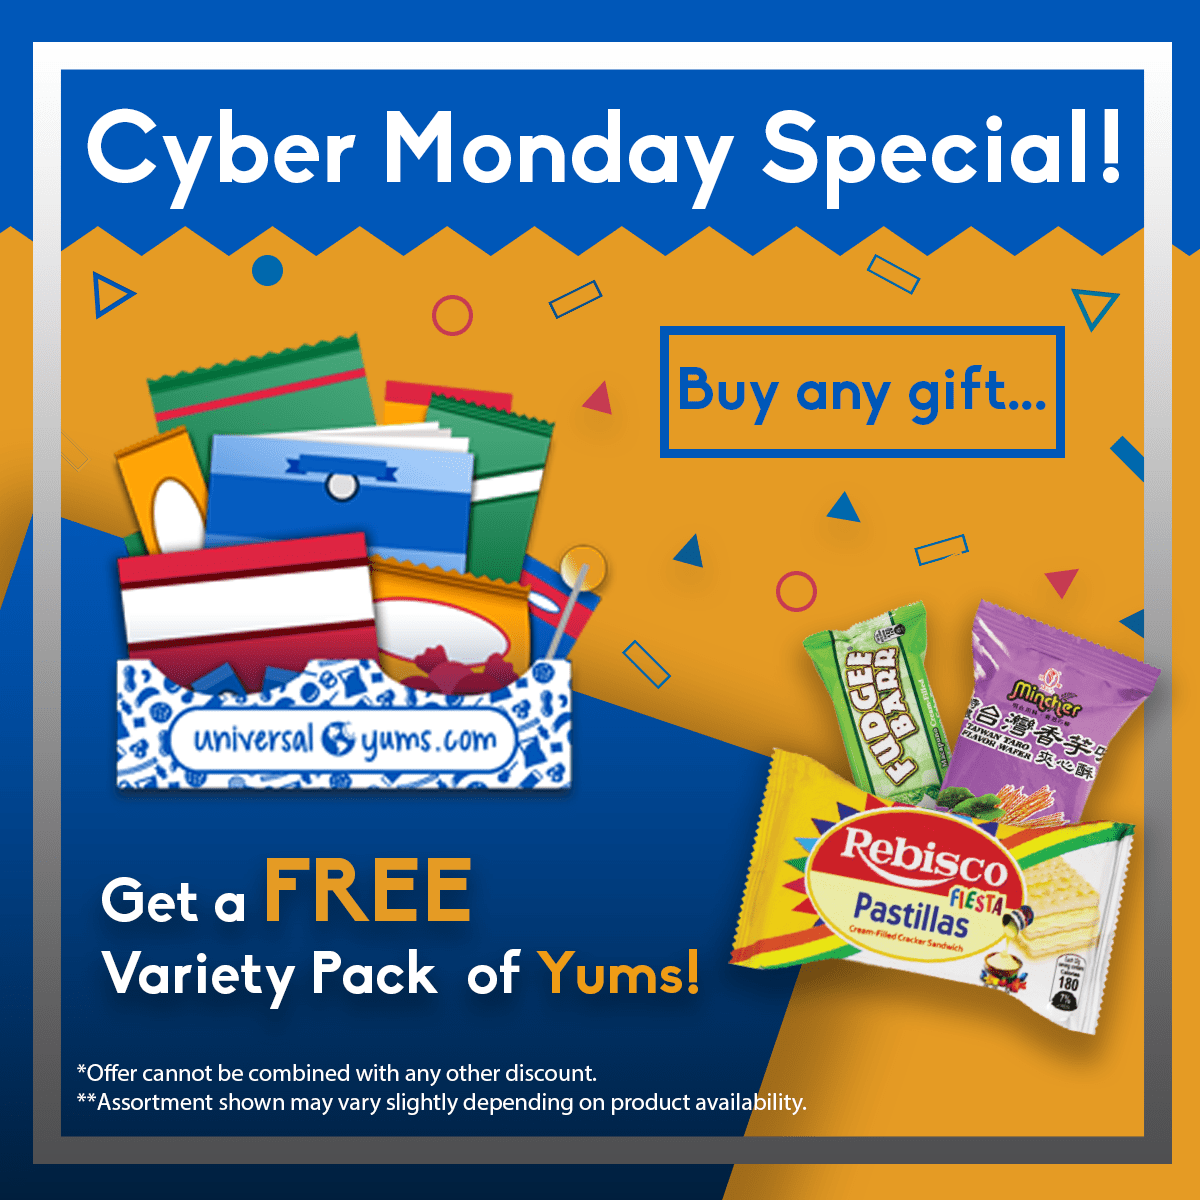 Universal Yums Cyber Monday 2018 Coupon: Get a FREE Variety Pack of Yums With Any Gift Subscription – TODAY ONLY!